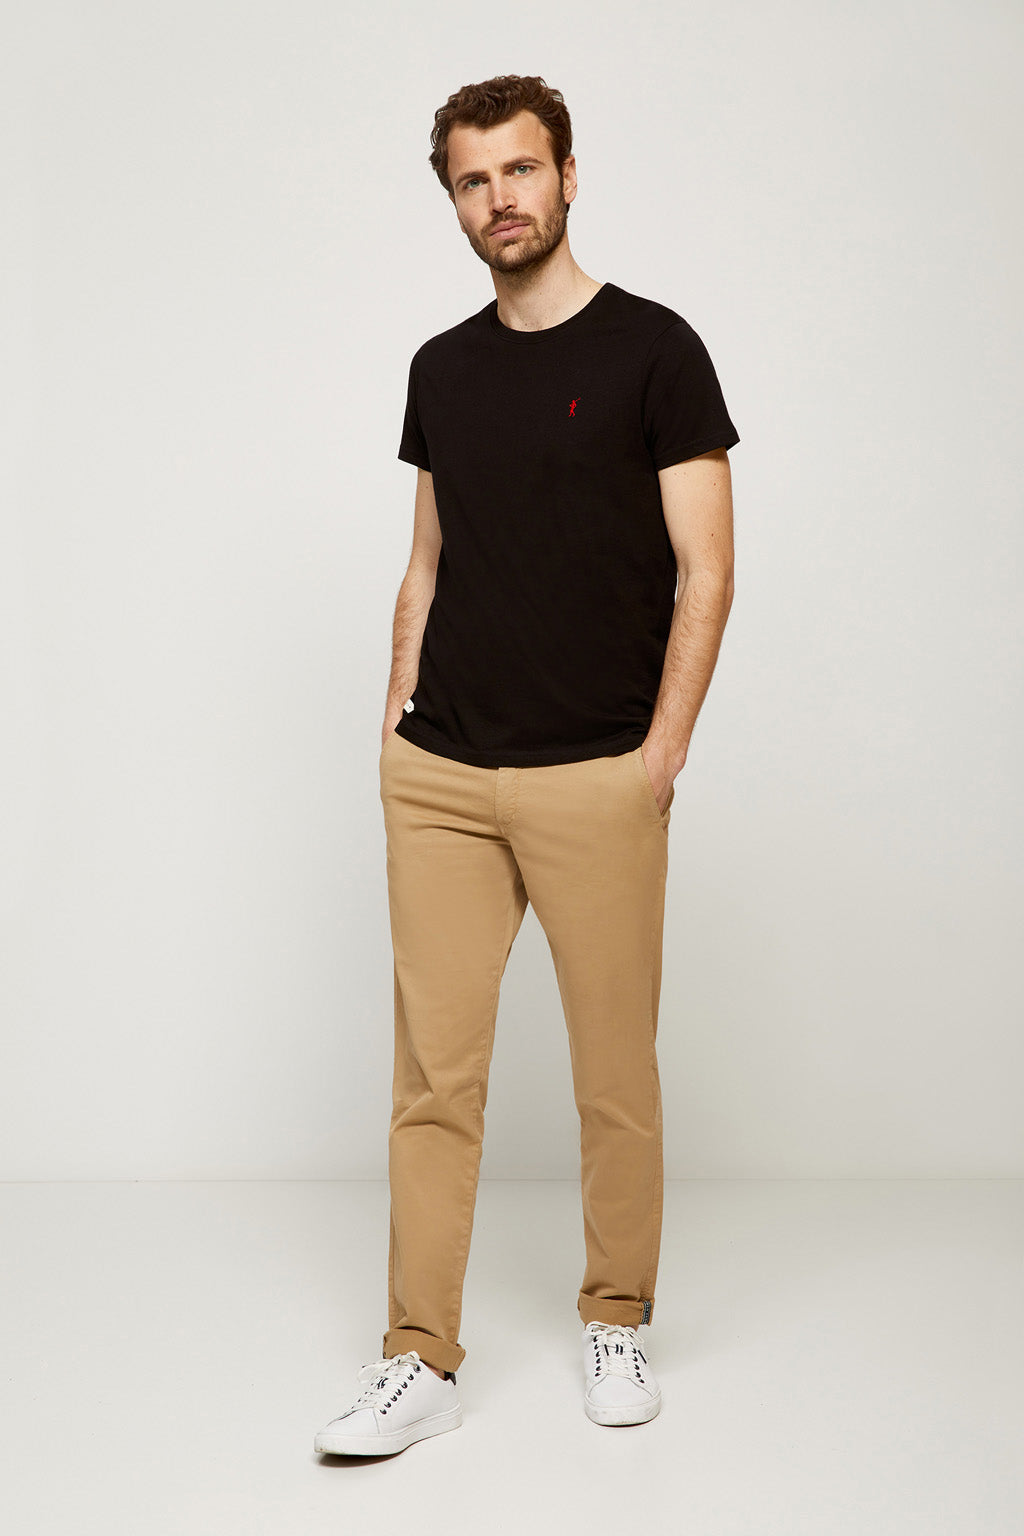 Black tee with embroidered logo